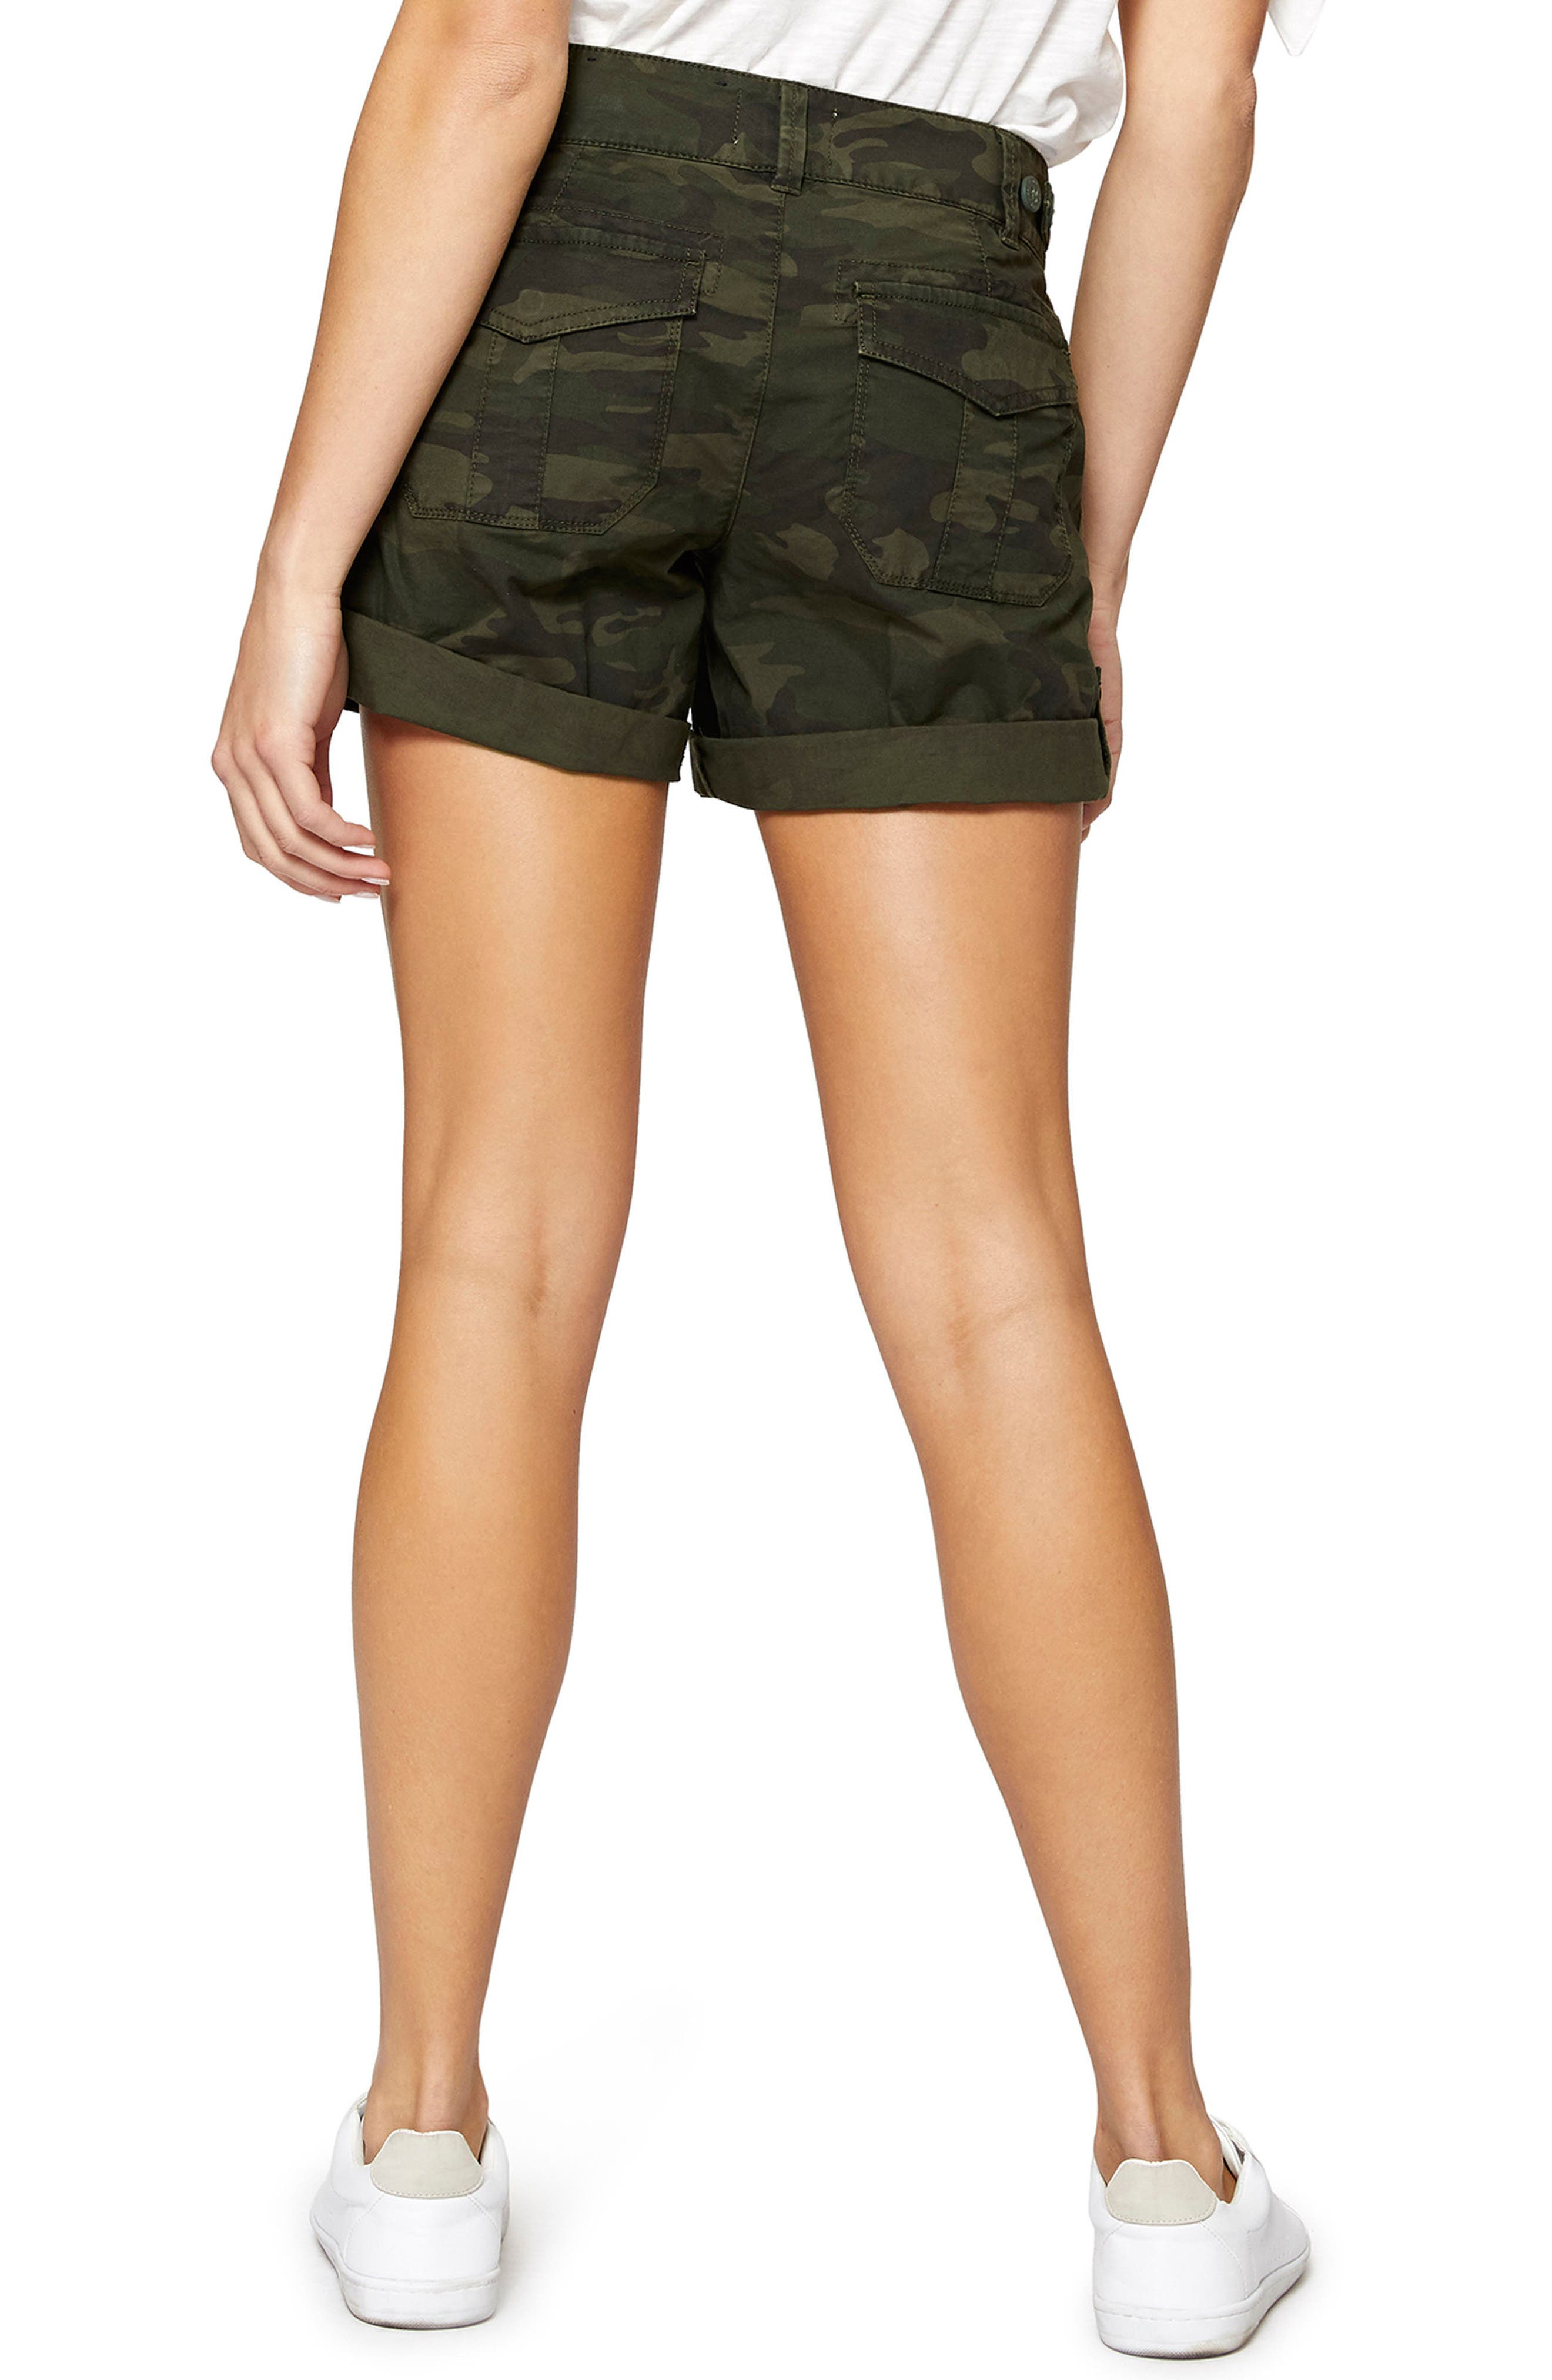 Wanderer Camouflage Shorts,                             Alternate thumbnail 2, color,                             Mother Nature Camo